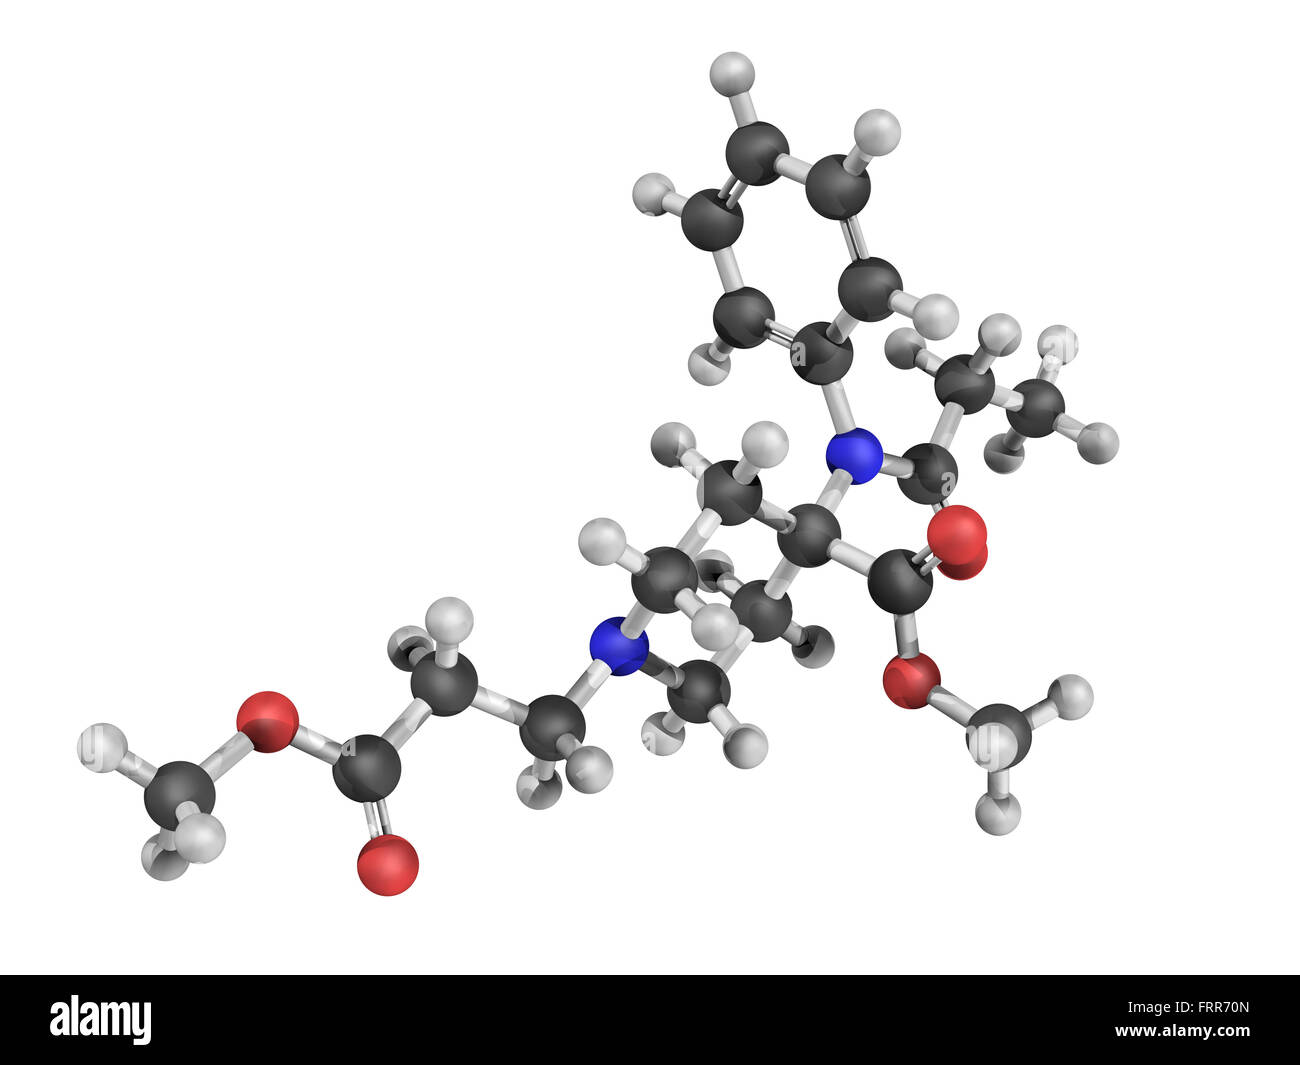 Chemical structure of remifentanil, a potent ultra short-acting synthetic opioid analgesic drug.  It is given to - Stock Image